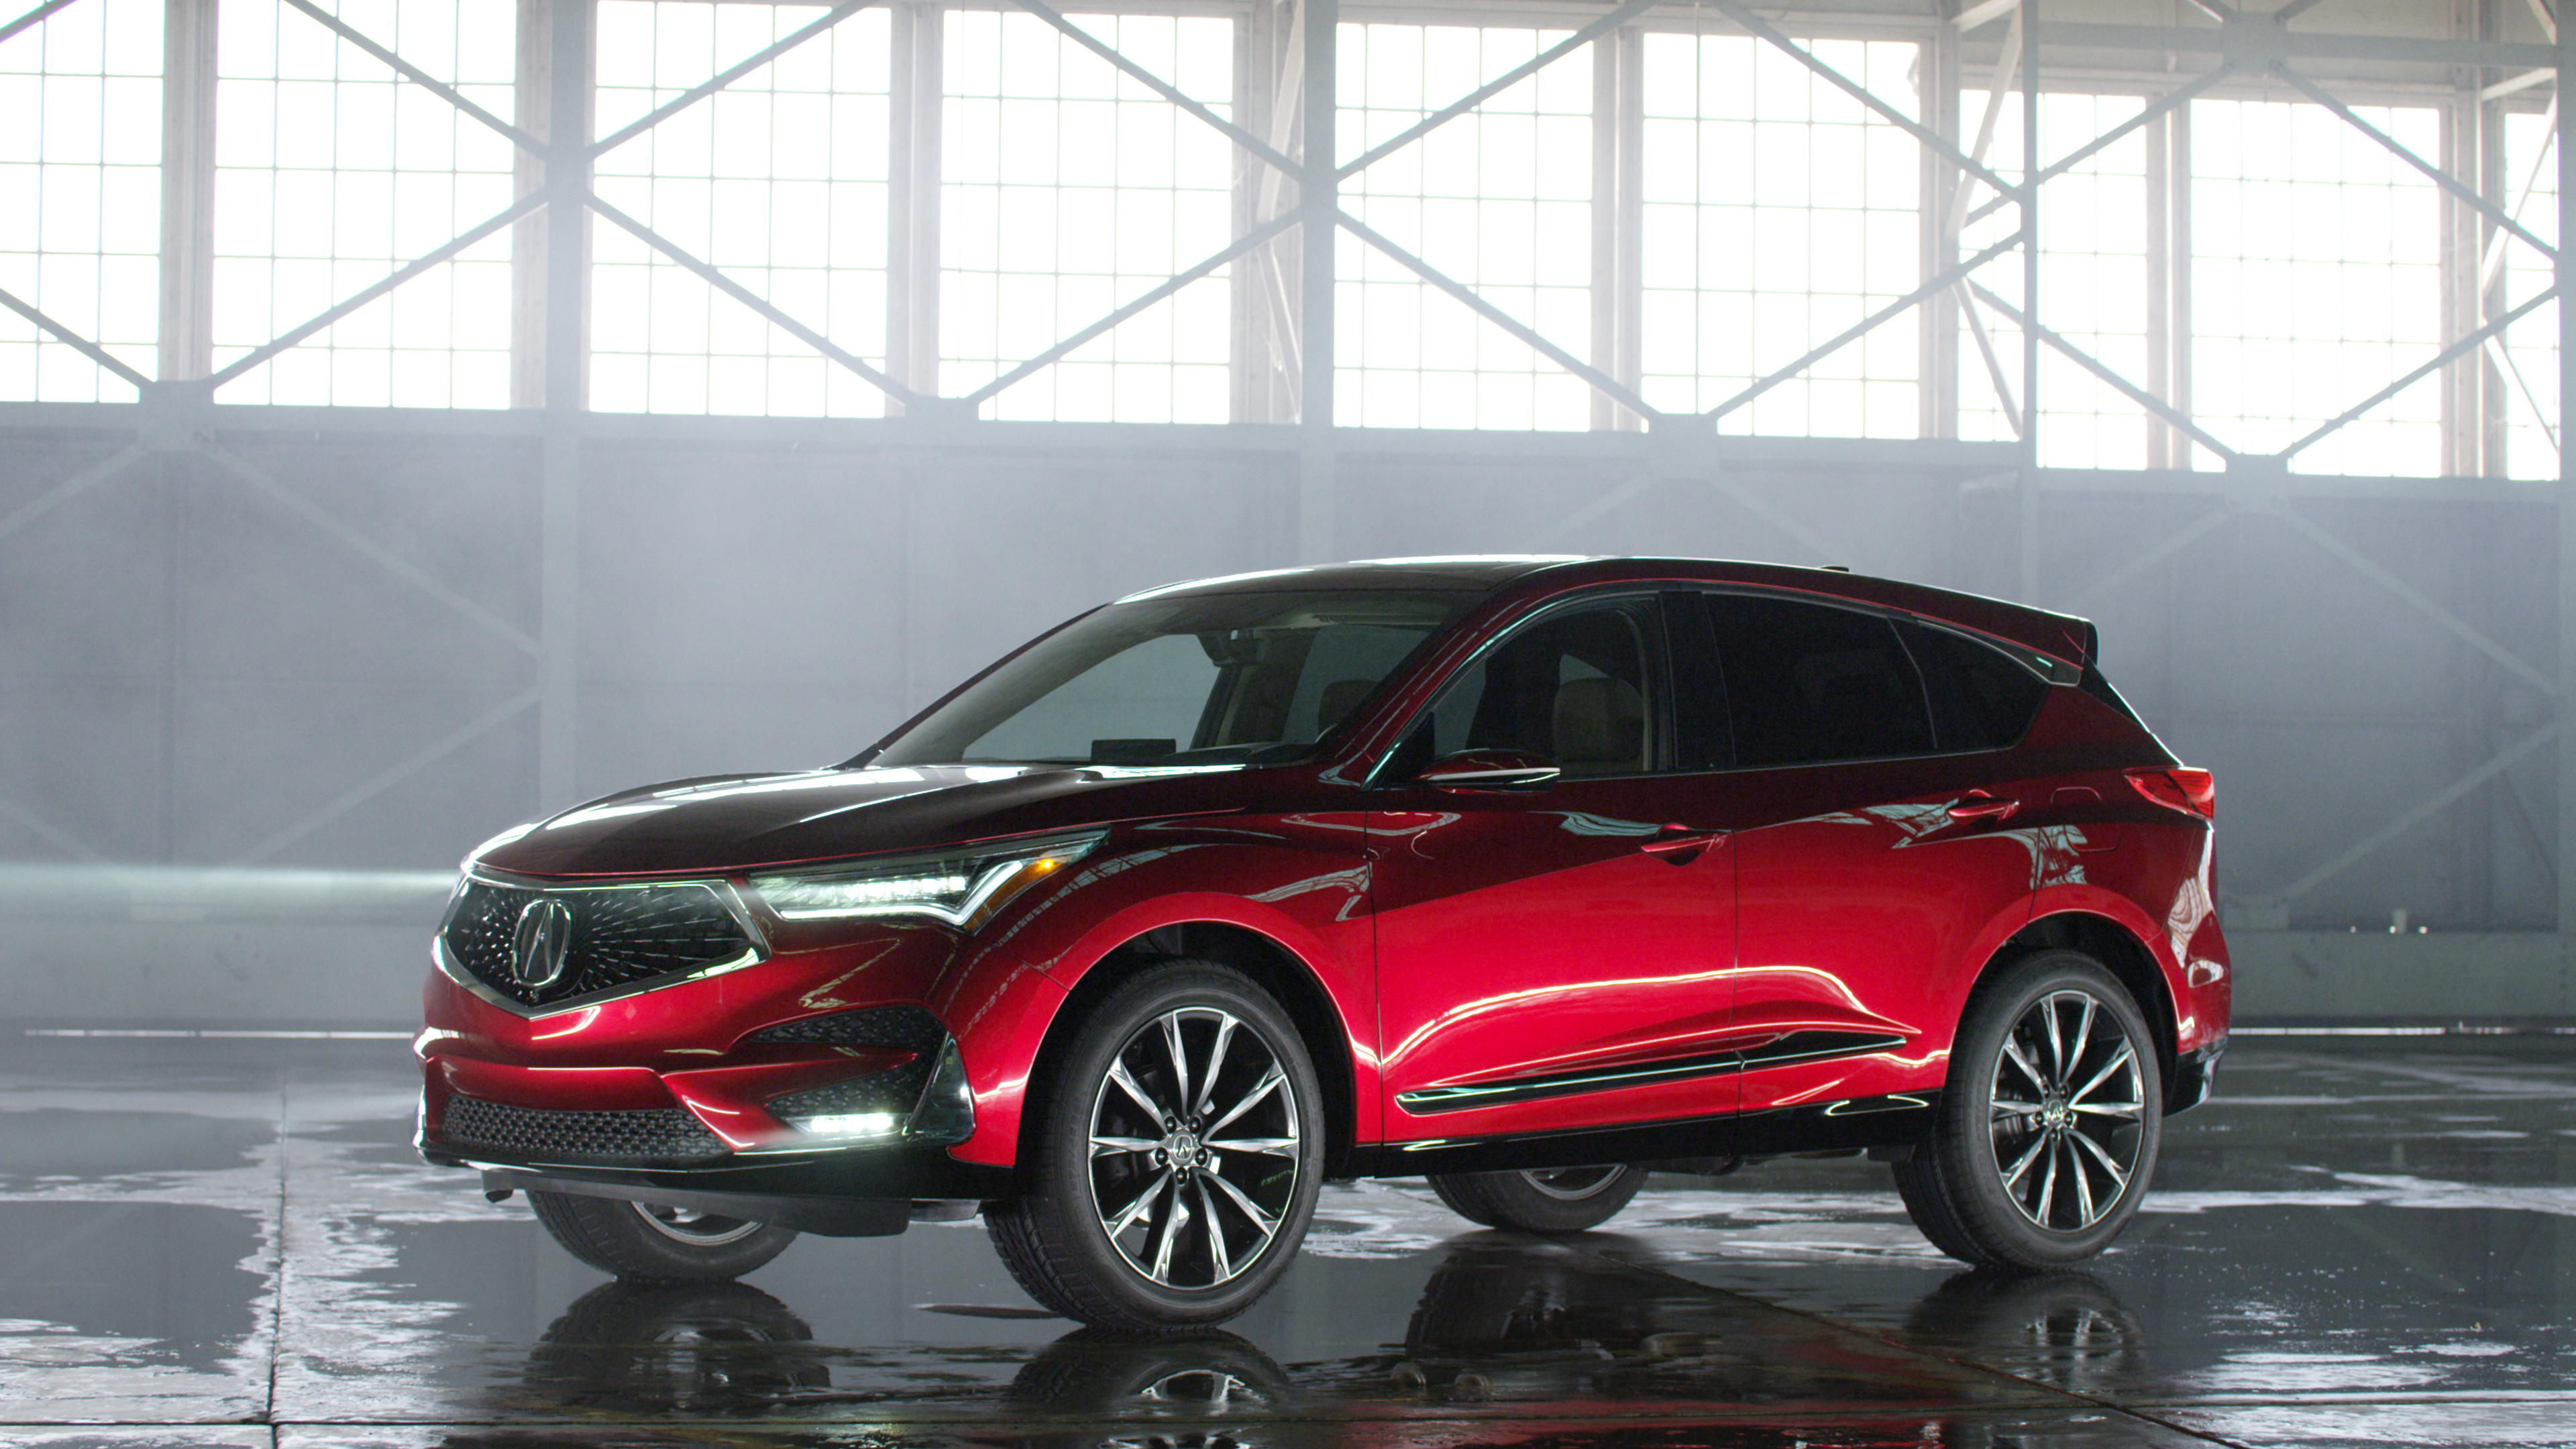 zdx wallpaper acura background crossover picture desktop free main wallpapers